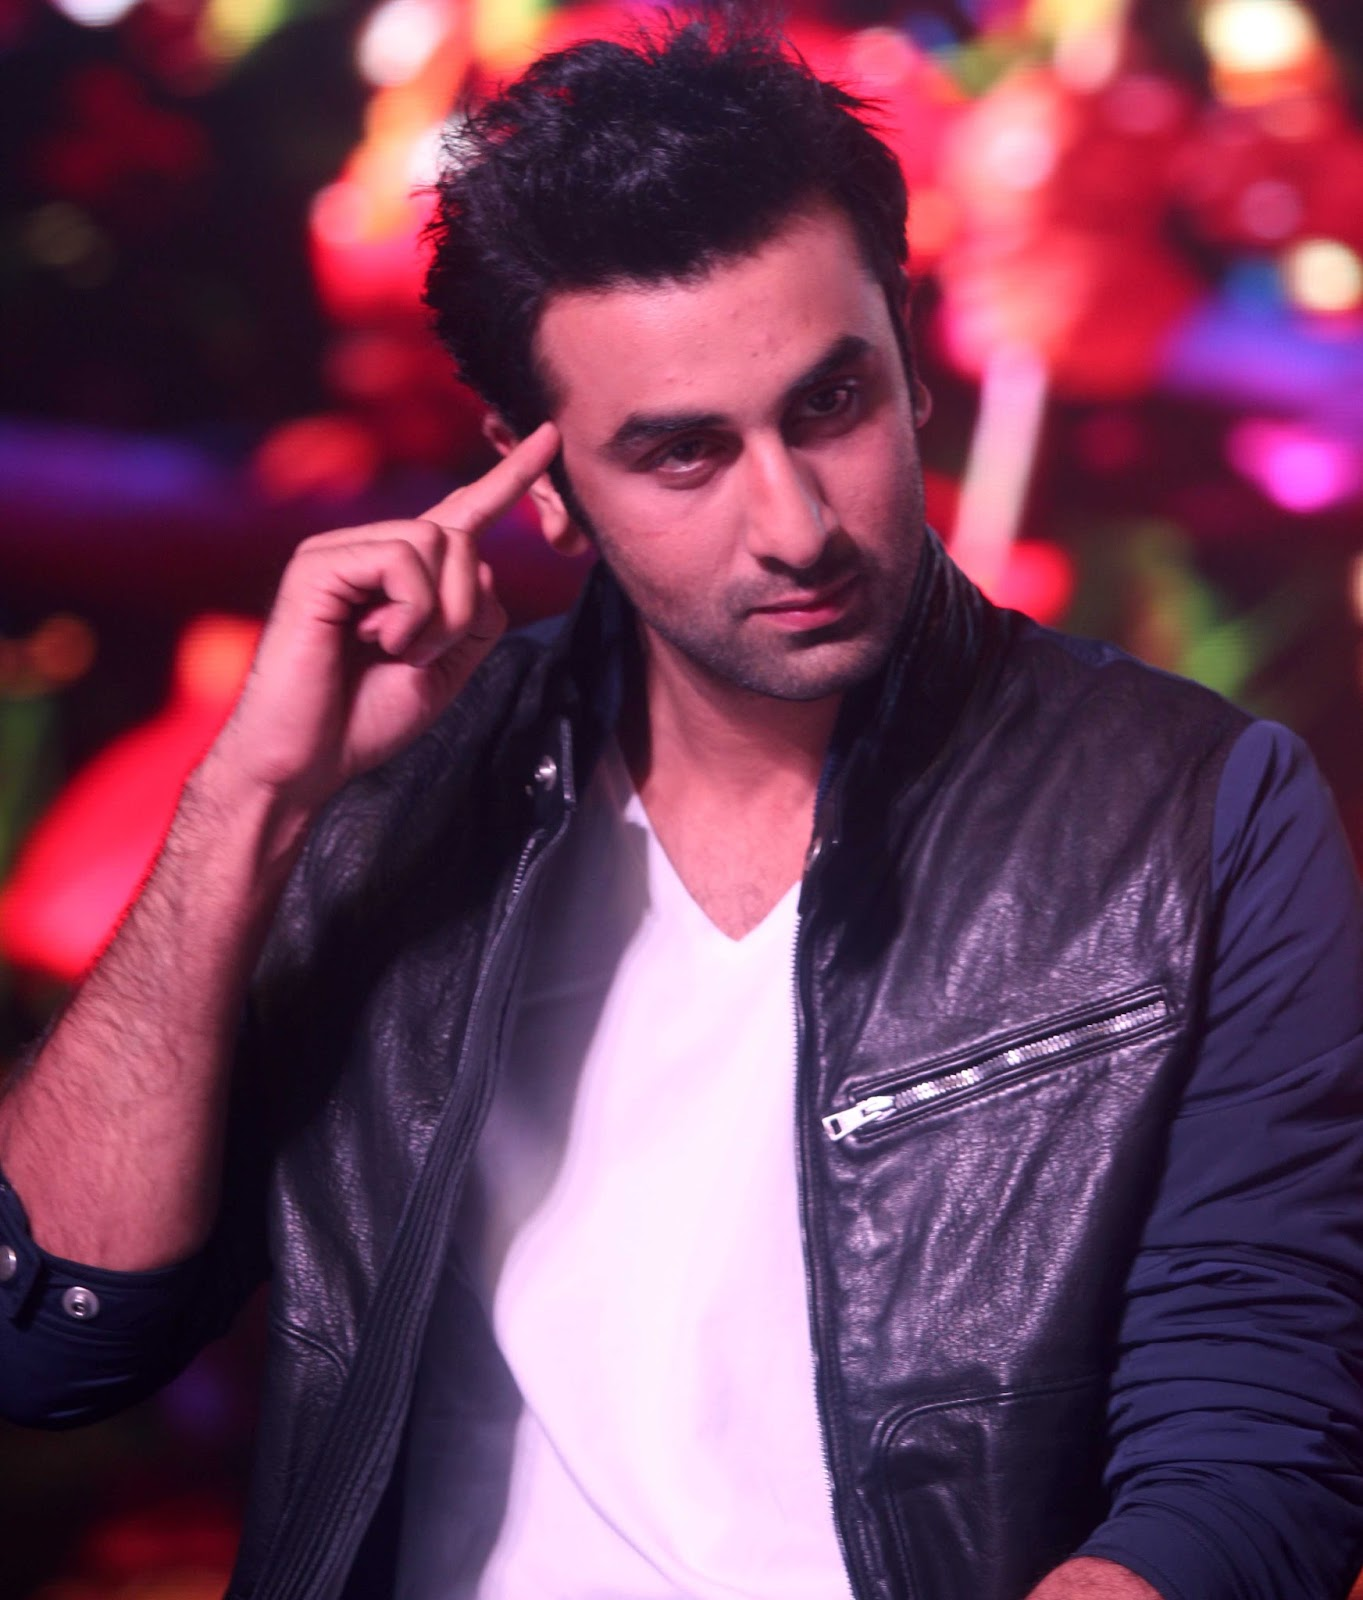 http://4.bp.blogspot.com/-P-tiPRowCXM/UinA34ym6_I/AAAAAAABiQI/aBRgOlj_MwM/s1600/Ranbir+Kapoor+at+the+launch+of+song+%2527Aare+Aare%2527+from+movie+%2527Besharam%2527+%25281%2529.JPG